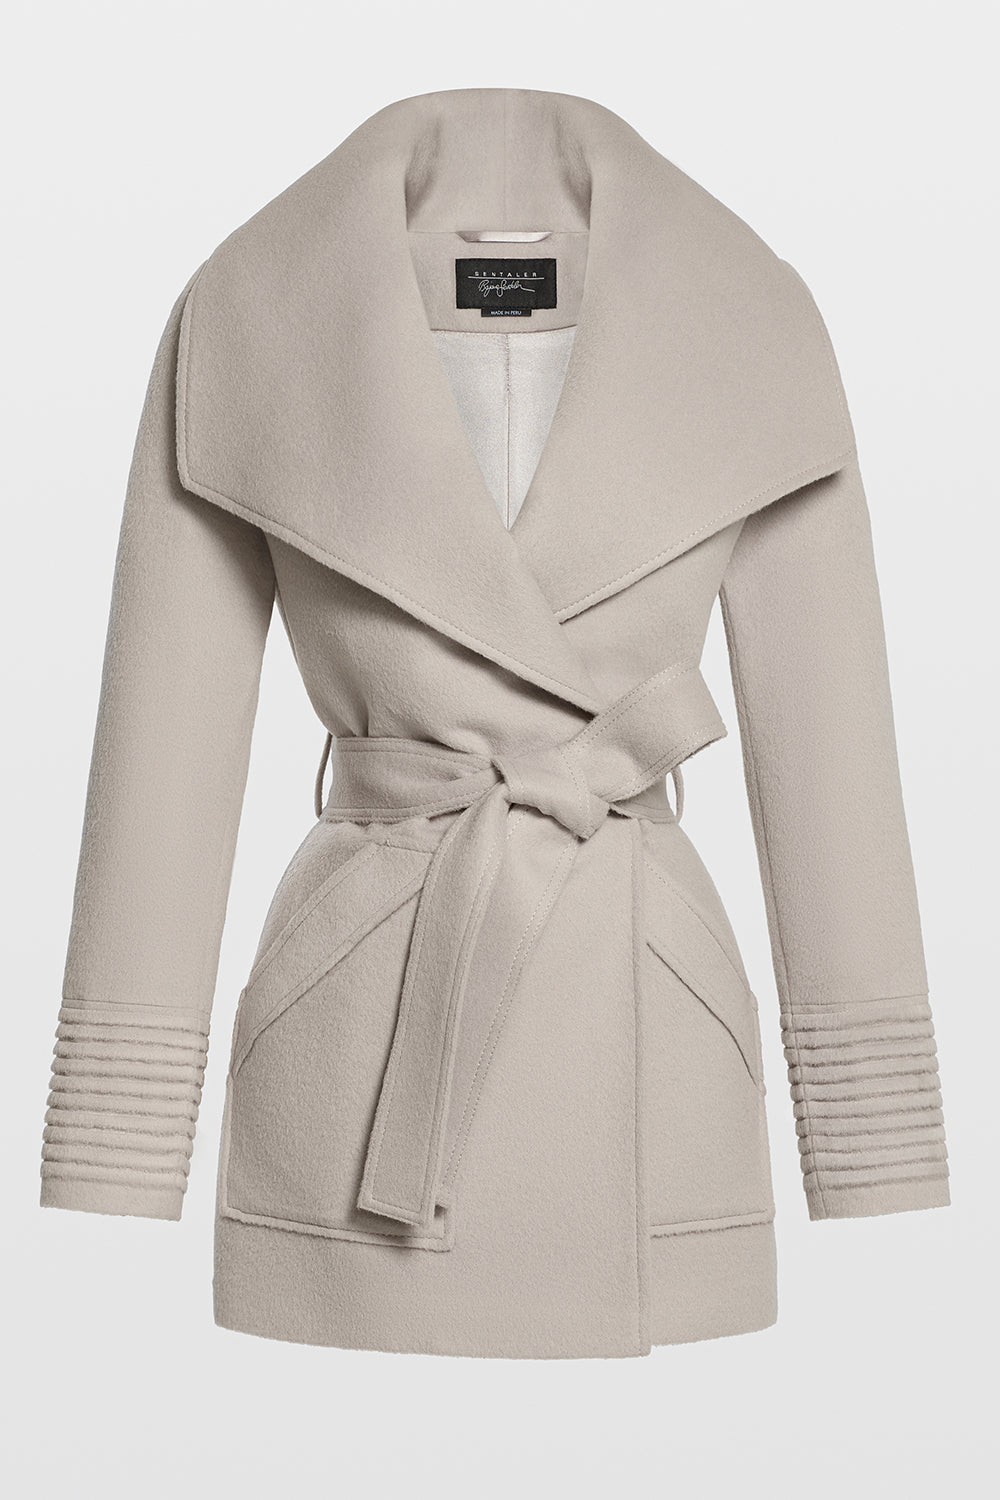 Sentaler Cropped Wide Collar Wrap Coat featured in Baby Alpaca and available in Bleeker Beige. Seen off figure